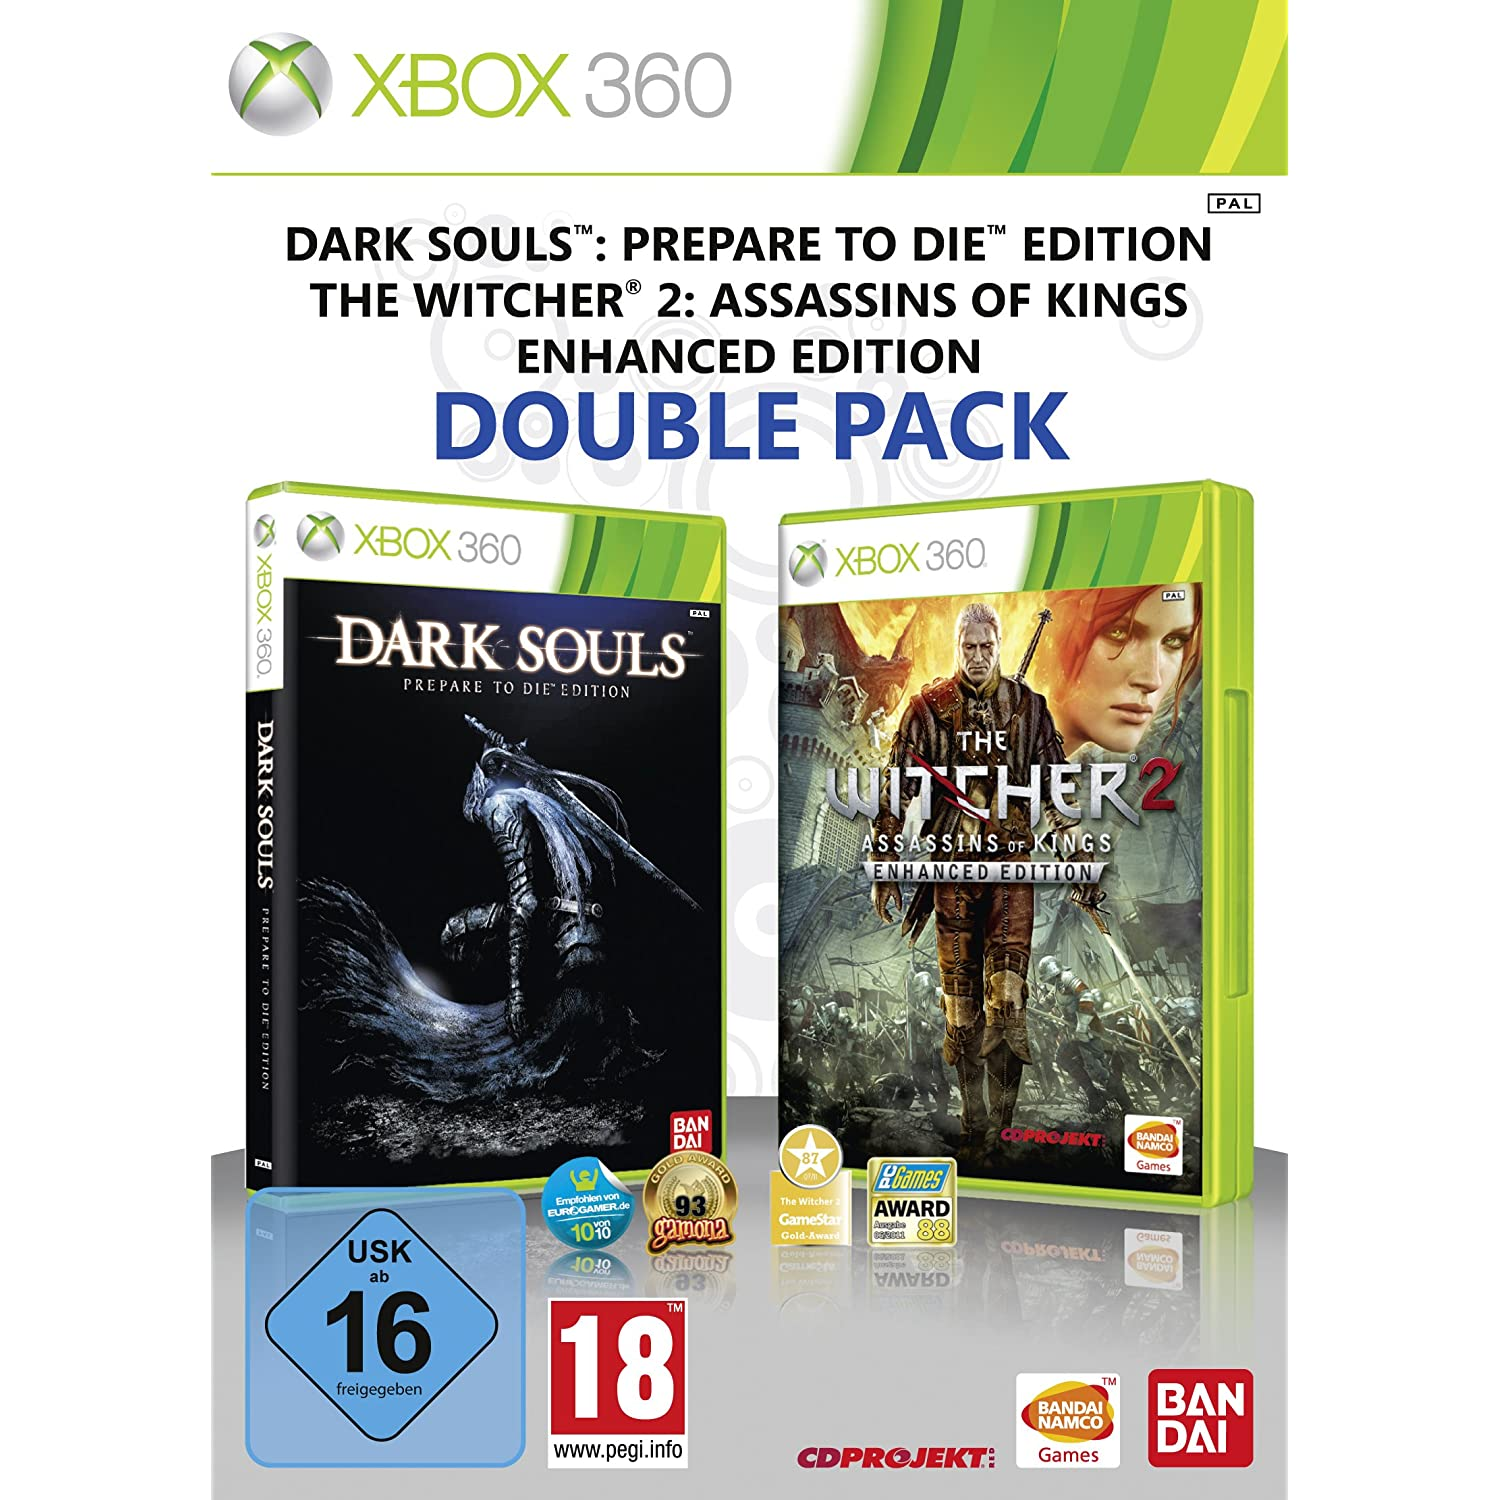 The Witcher 2 Double Pack